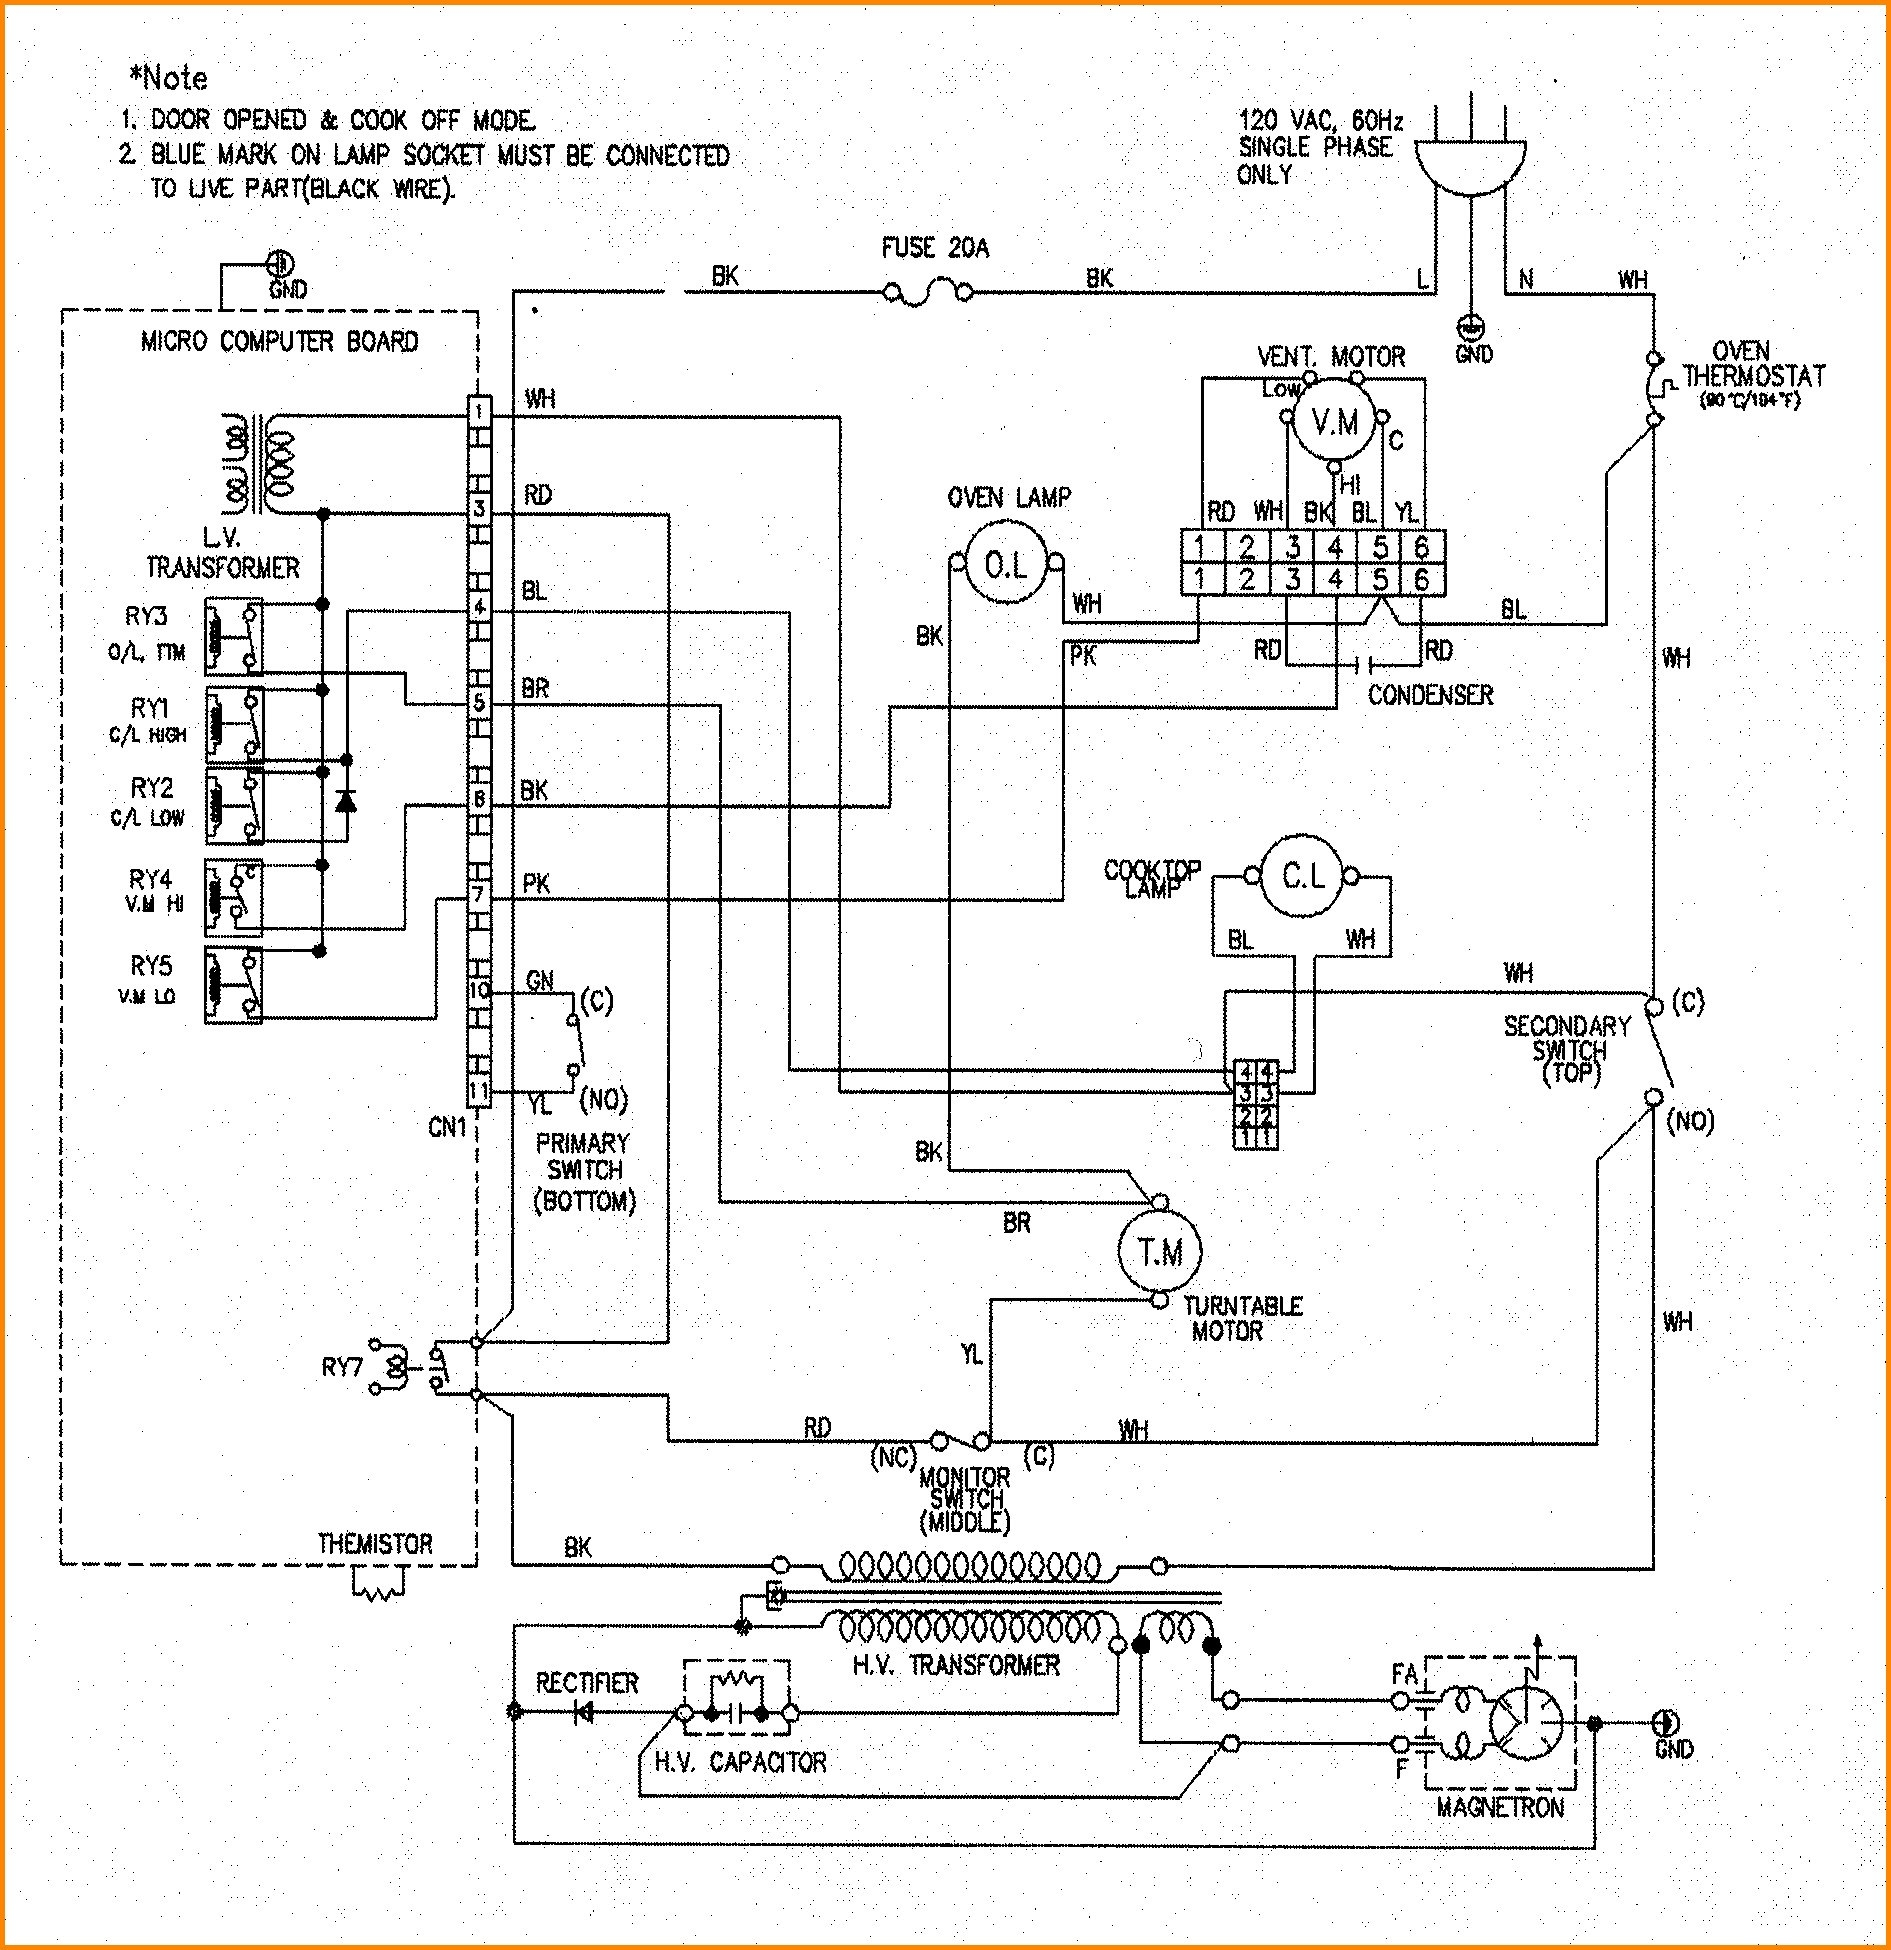 diy powder coating oven wiring diagram | free wiring diagram frigidaire oven wiring diagram